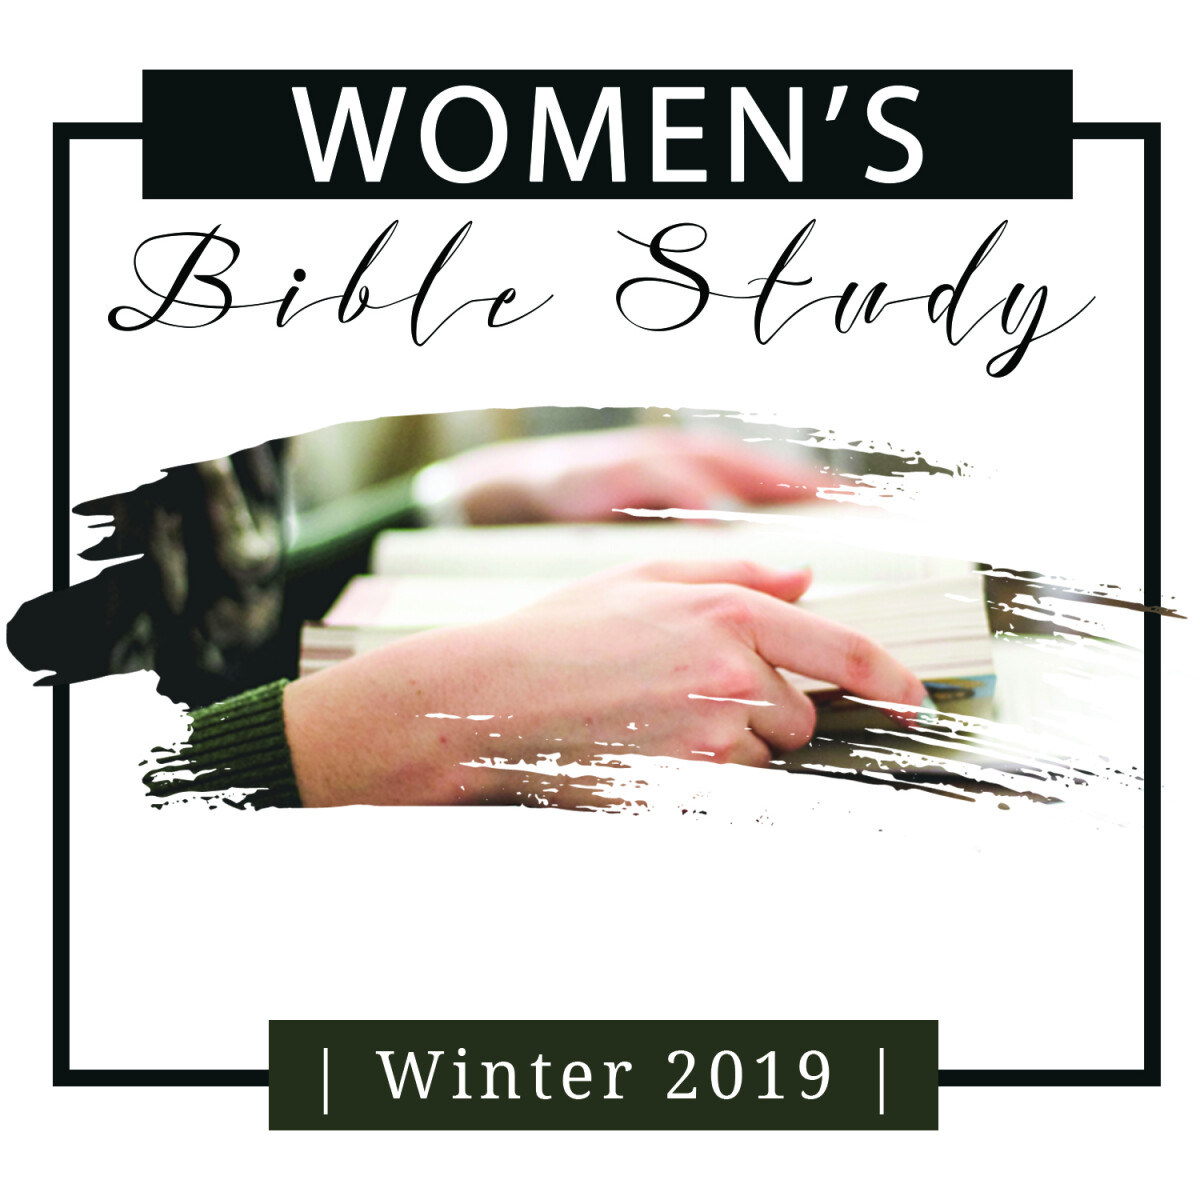 Women's Tuesday AM Bible Studies, new study begins March 5